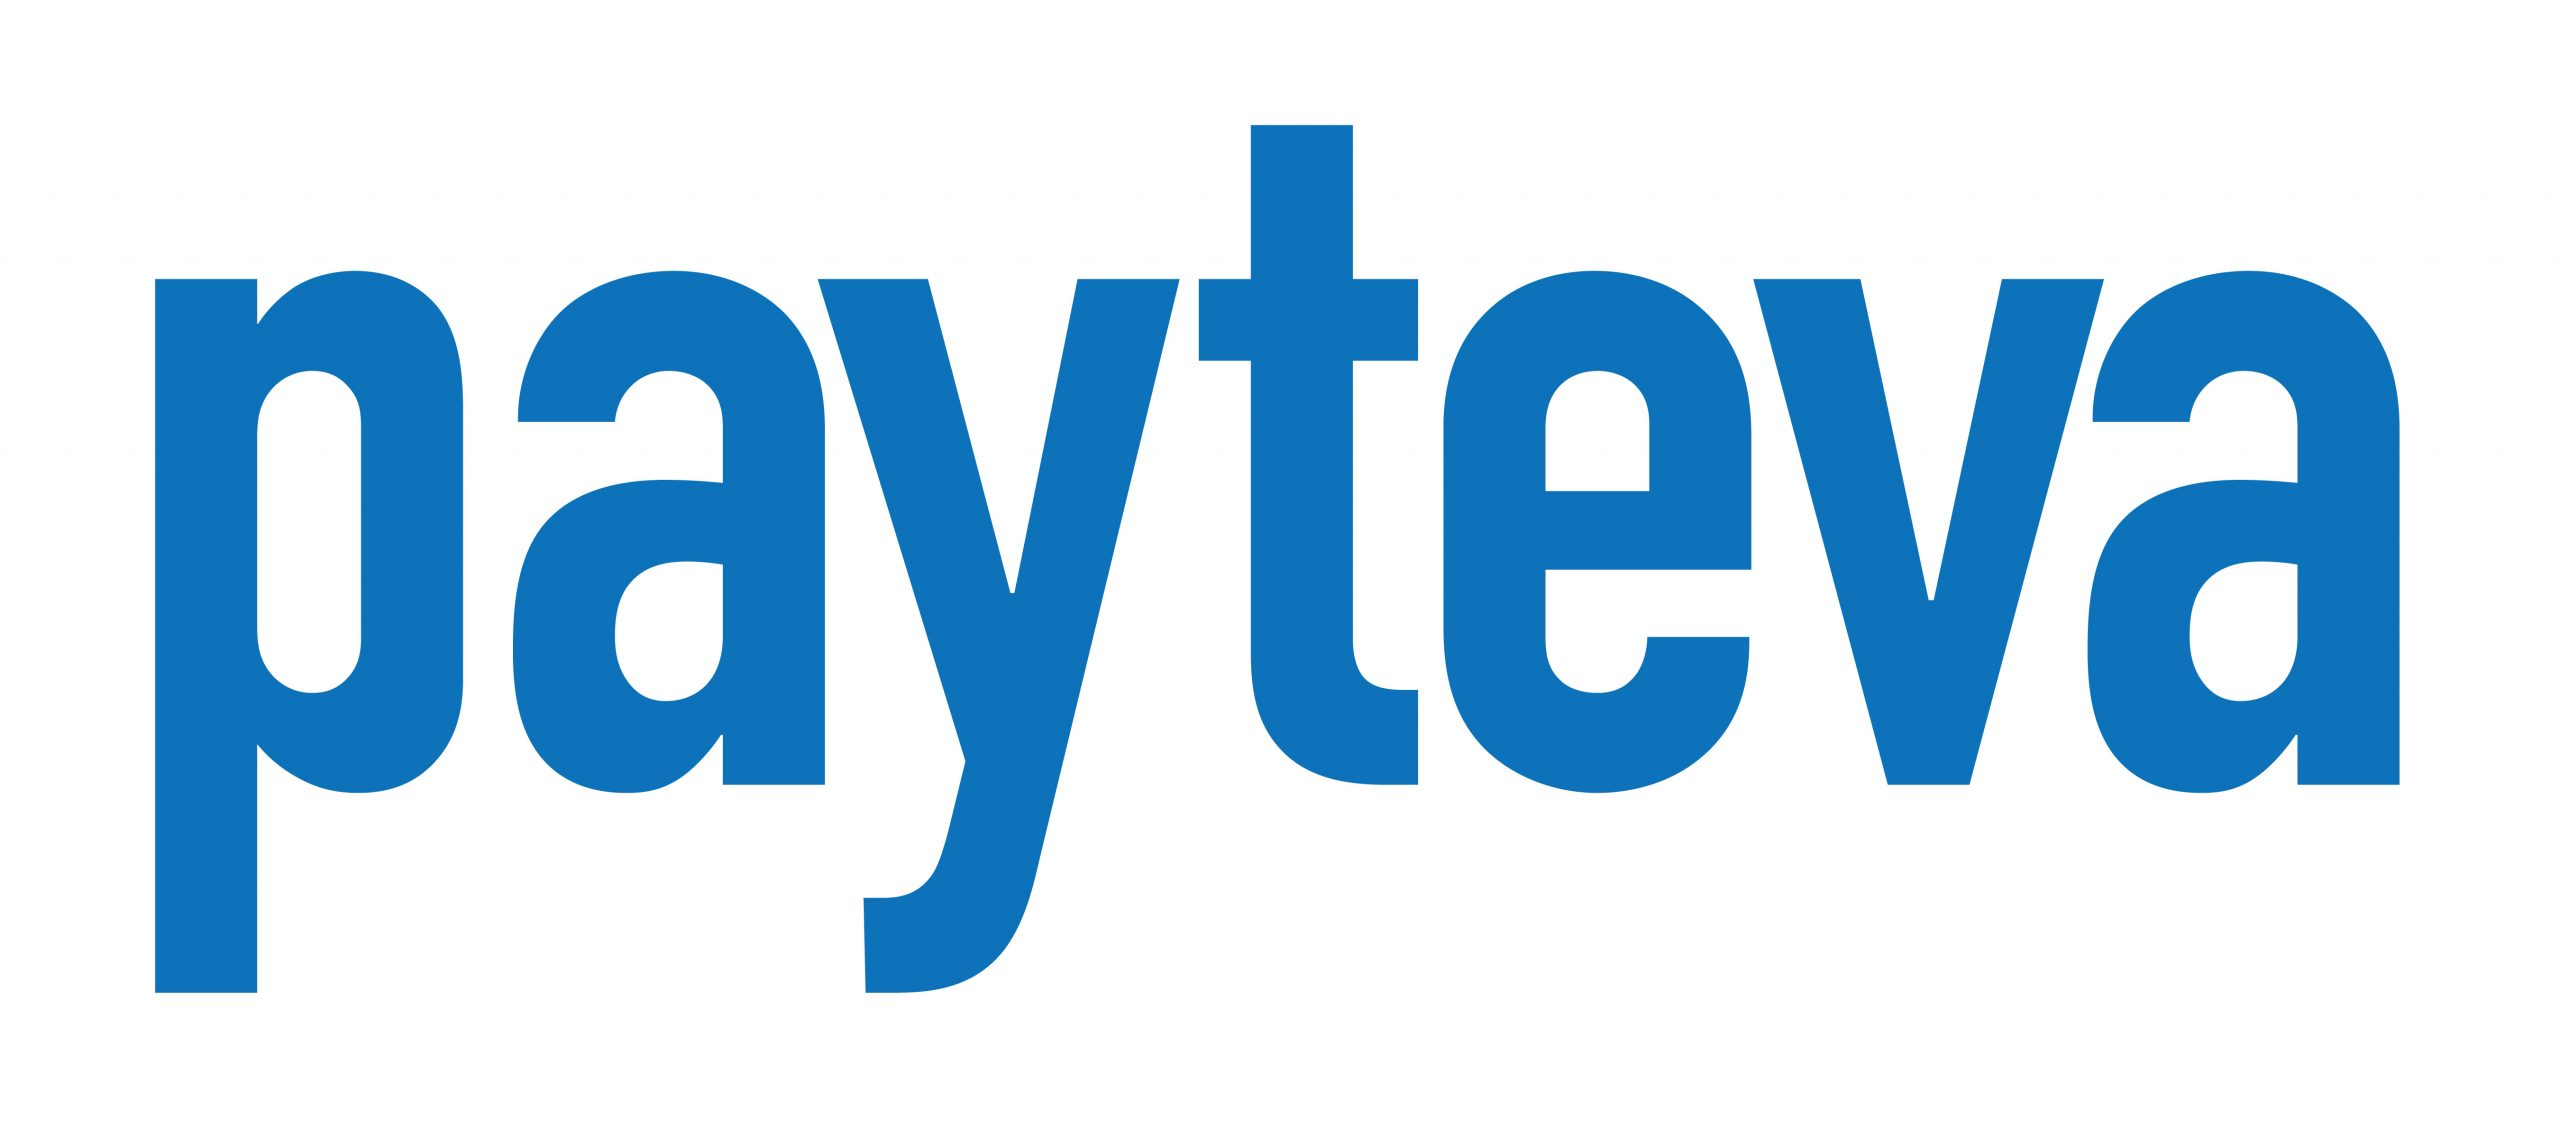 Payteva - Credit Card Processing, Payroll & Point of Sale